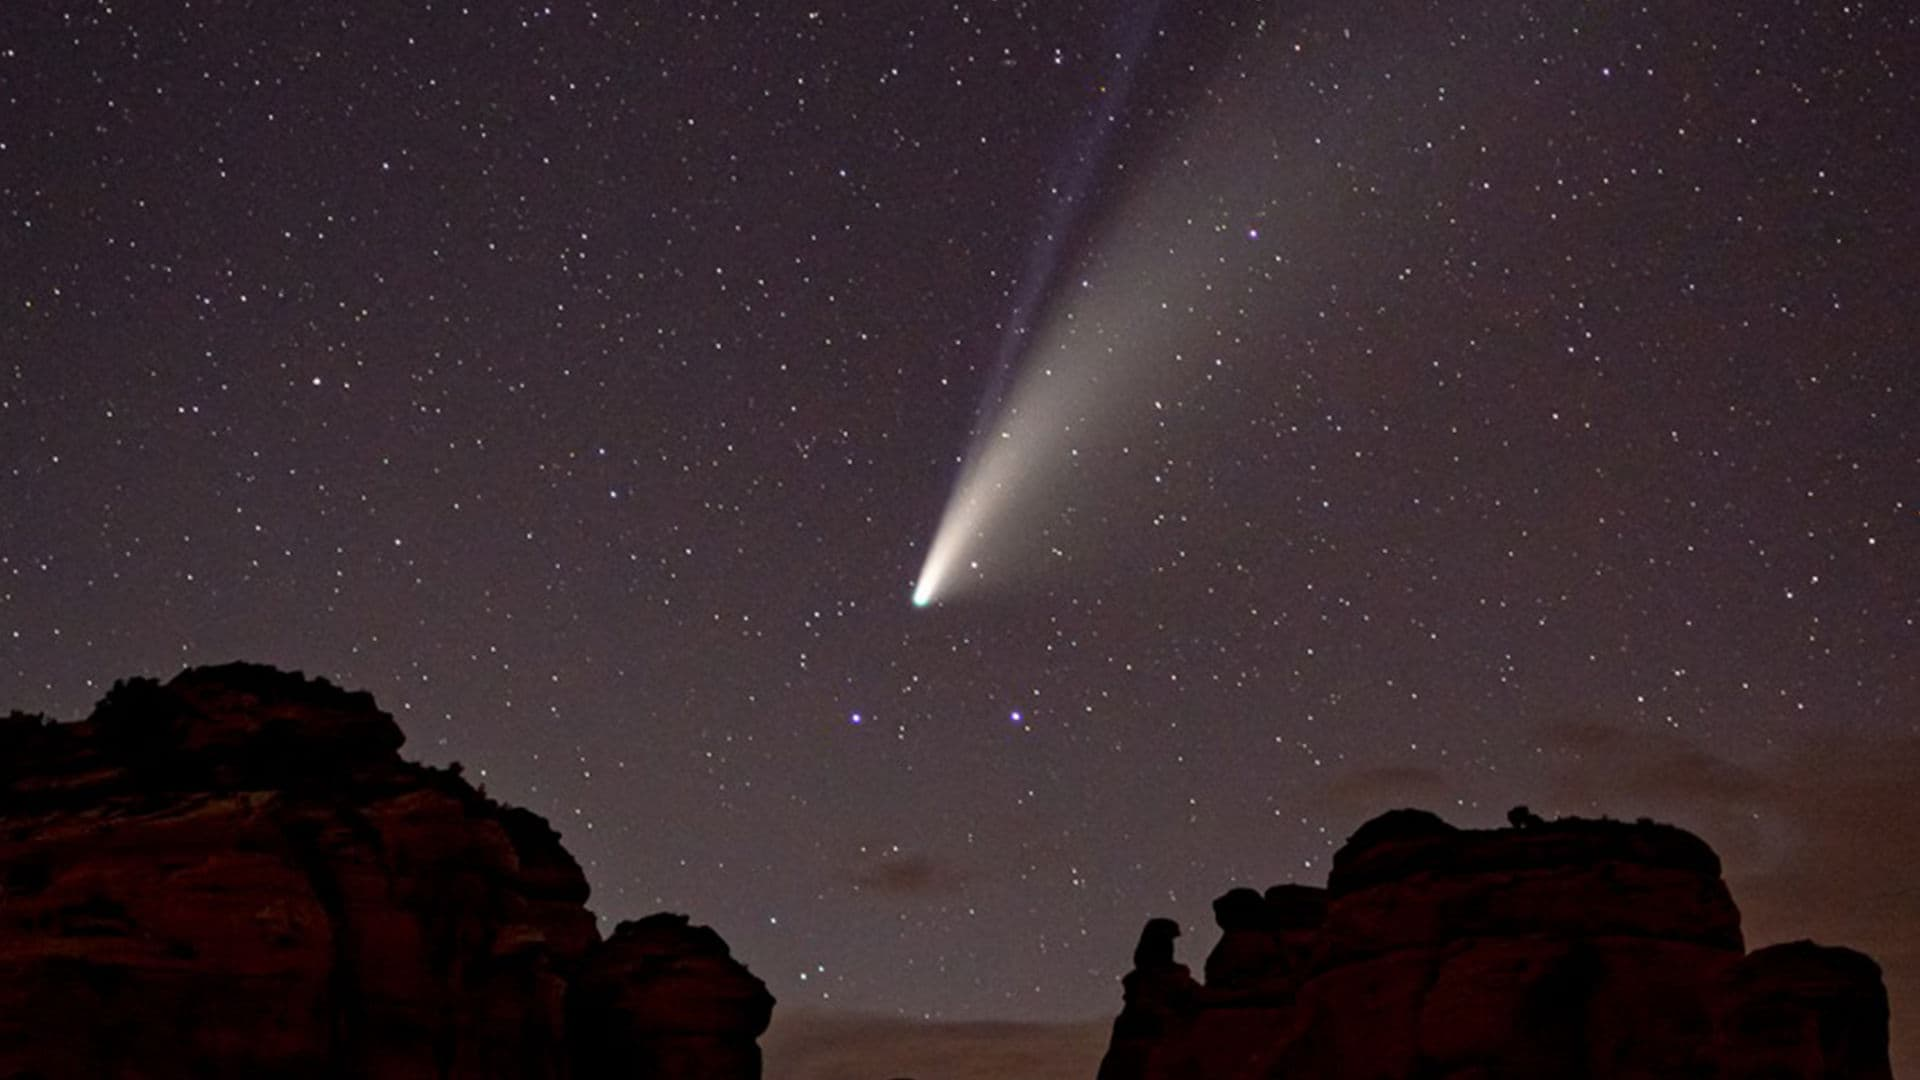 The List of 5 Last Great Comets